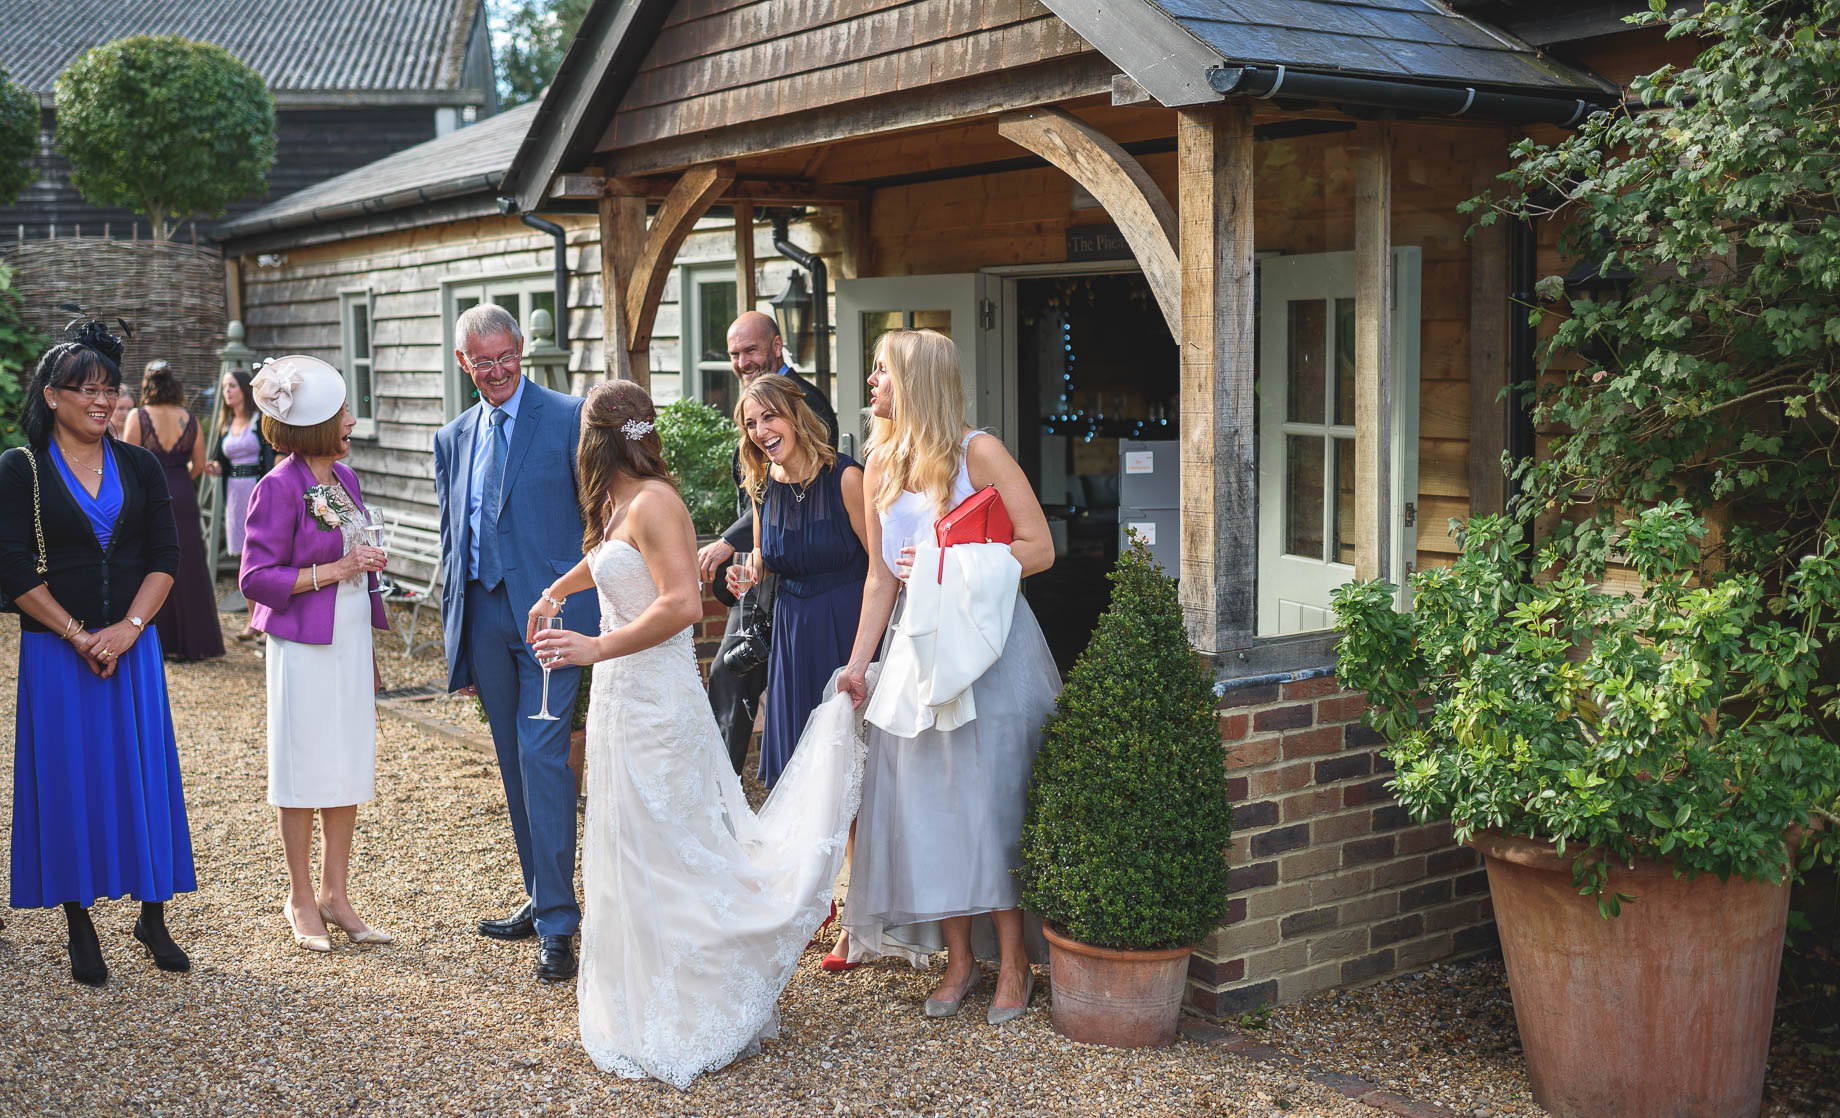 Gate Street Barn wedding photography - Guy Collier - Claire and Andy (121 of 192)